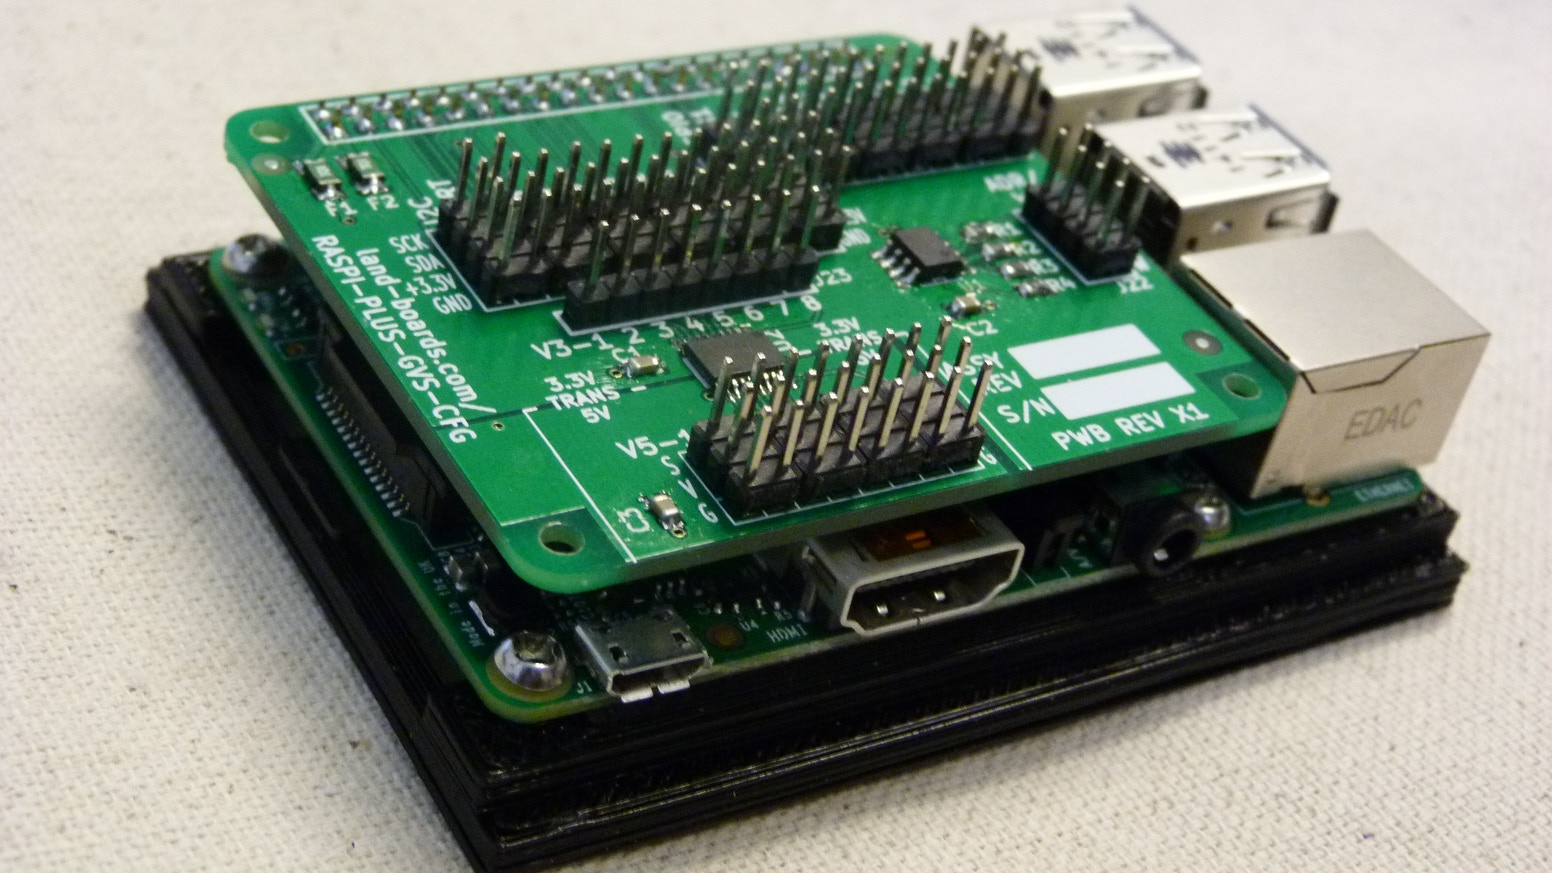 Hat that allows 3.3V and 5V devices to be easily connected to the Raspberry Pi Model B+ and from there onto the Internet of Things